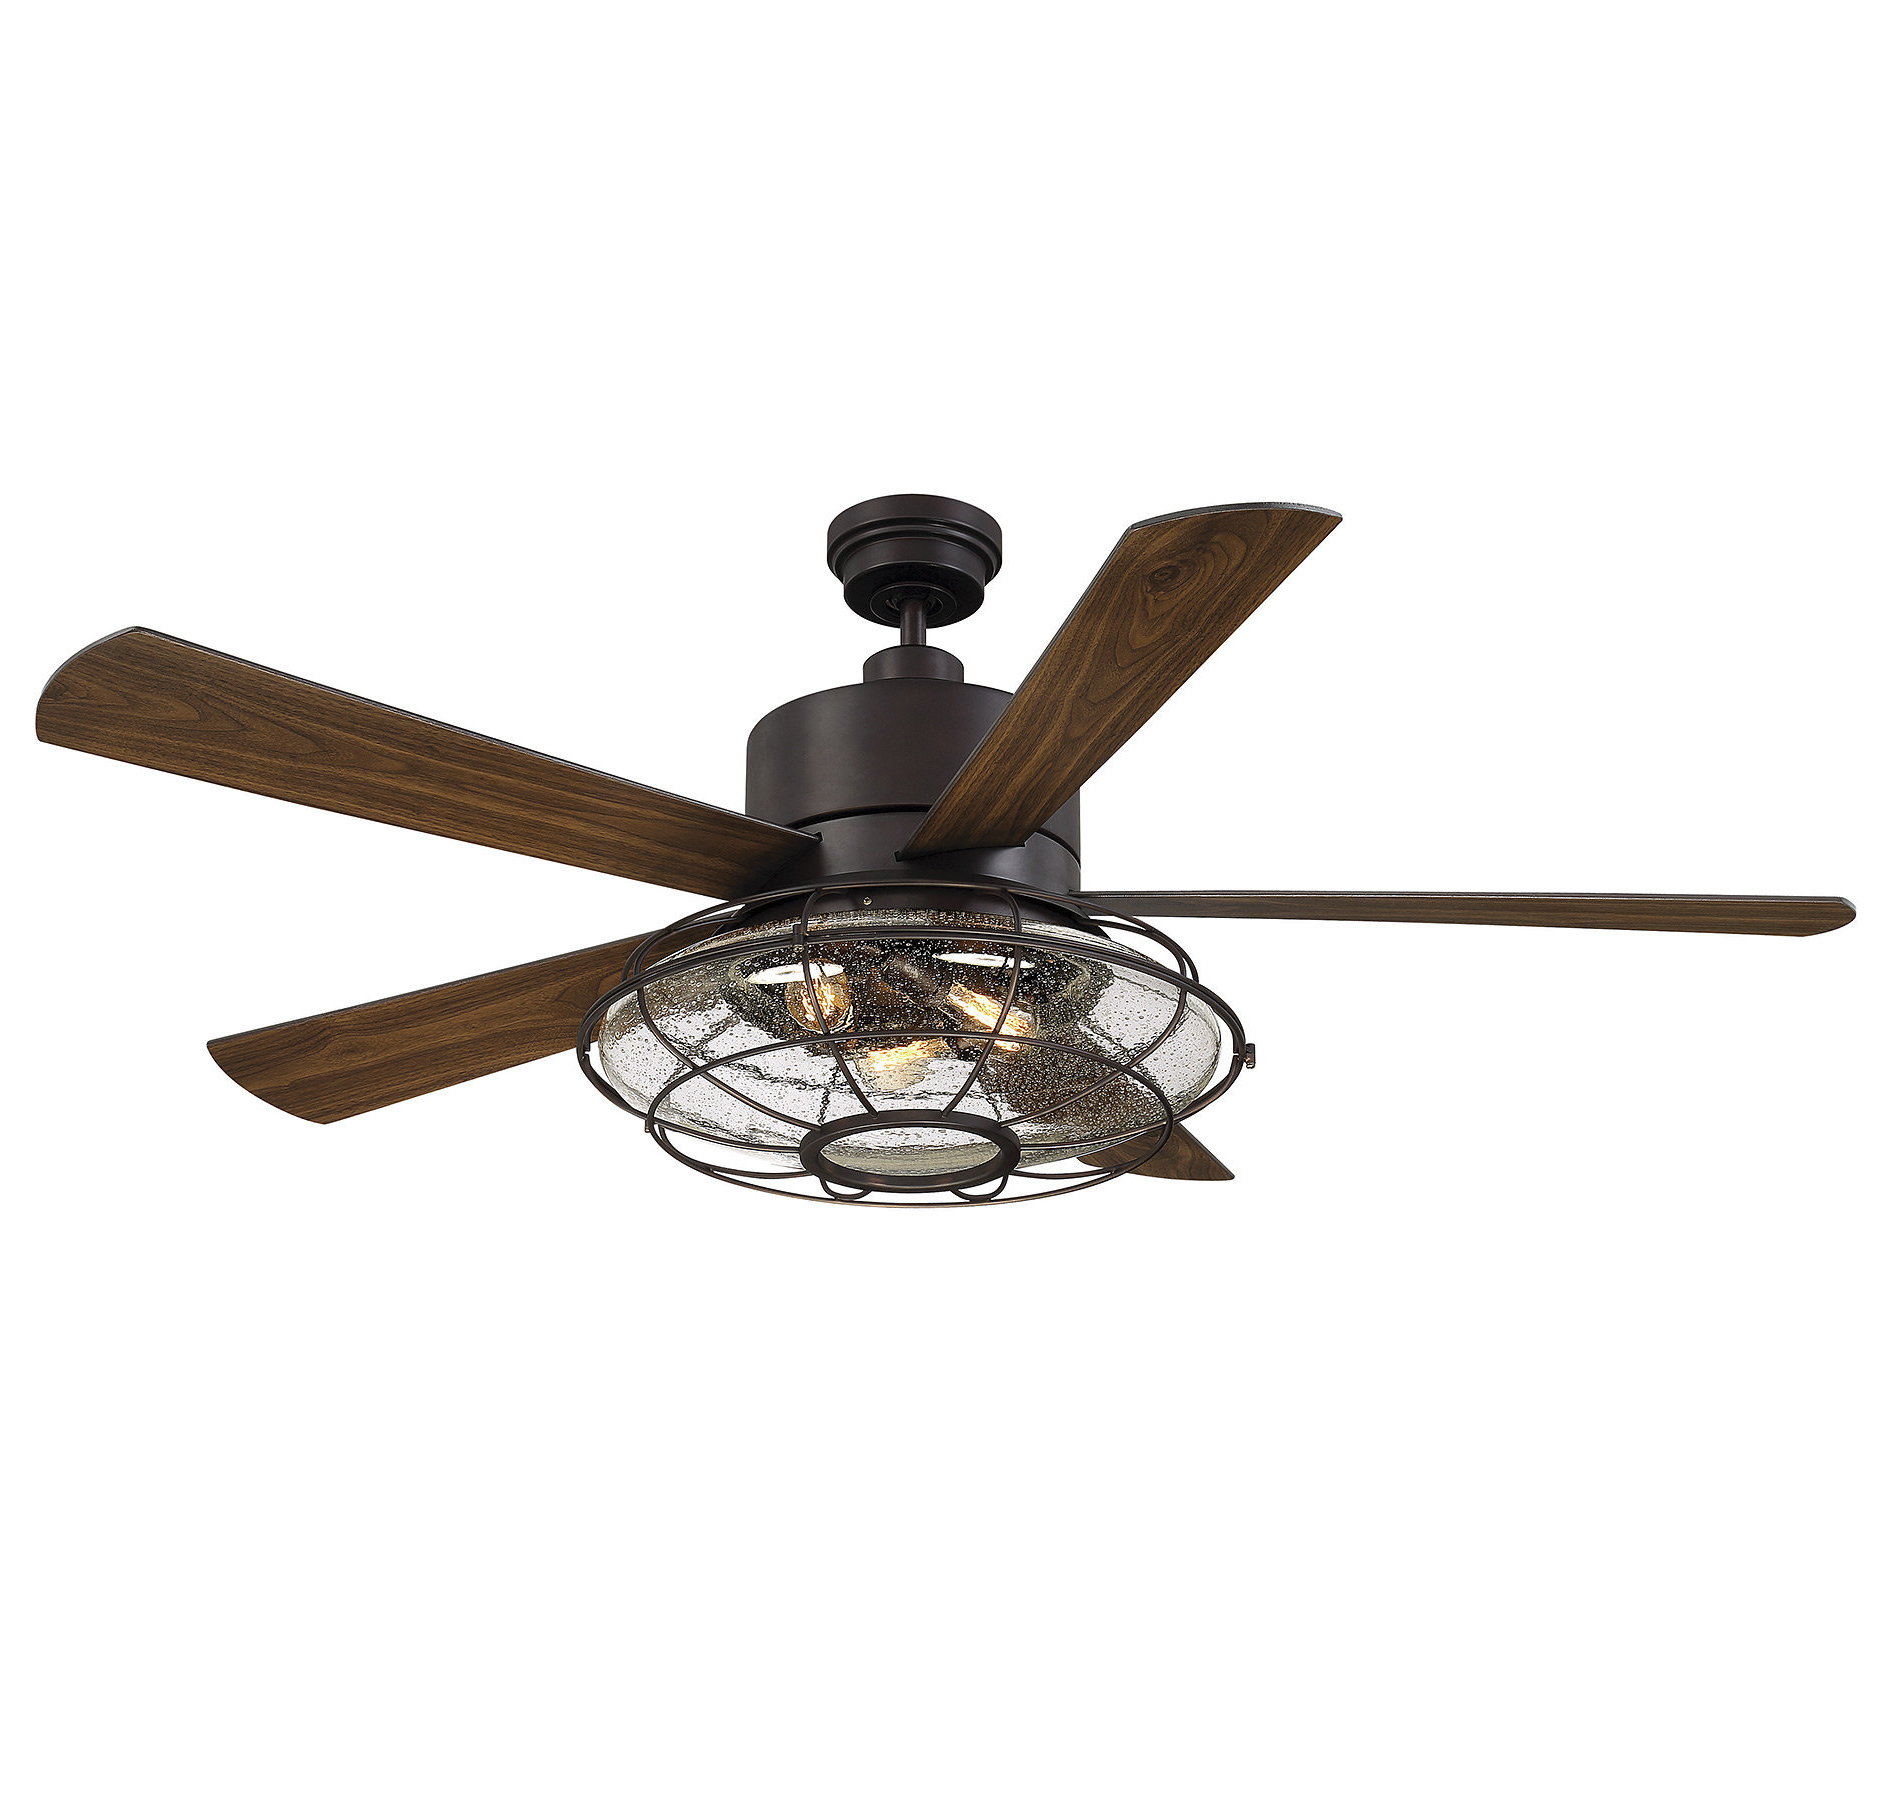 "2020 Ravenna 5 Blade Ceiling Fans Throughout 56"" Roberts 5 Blade Ceiling Fan With Remote Control, Light Kit Included (Gallery 20 of 20)"